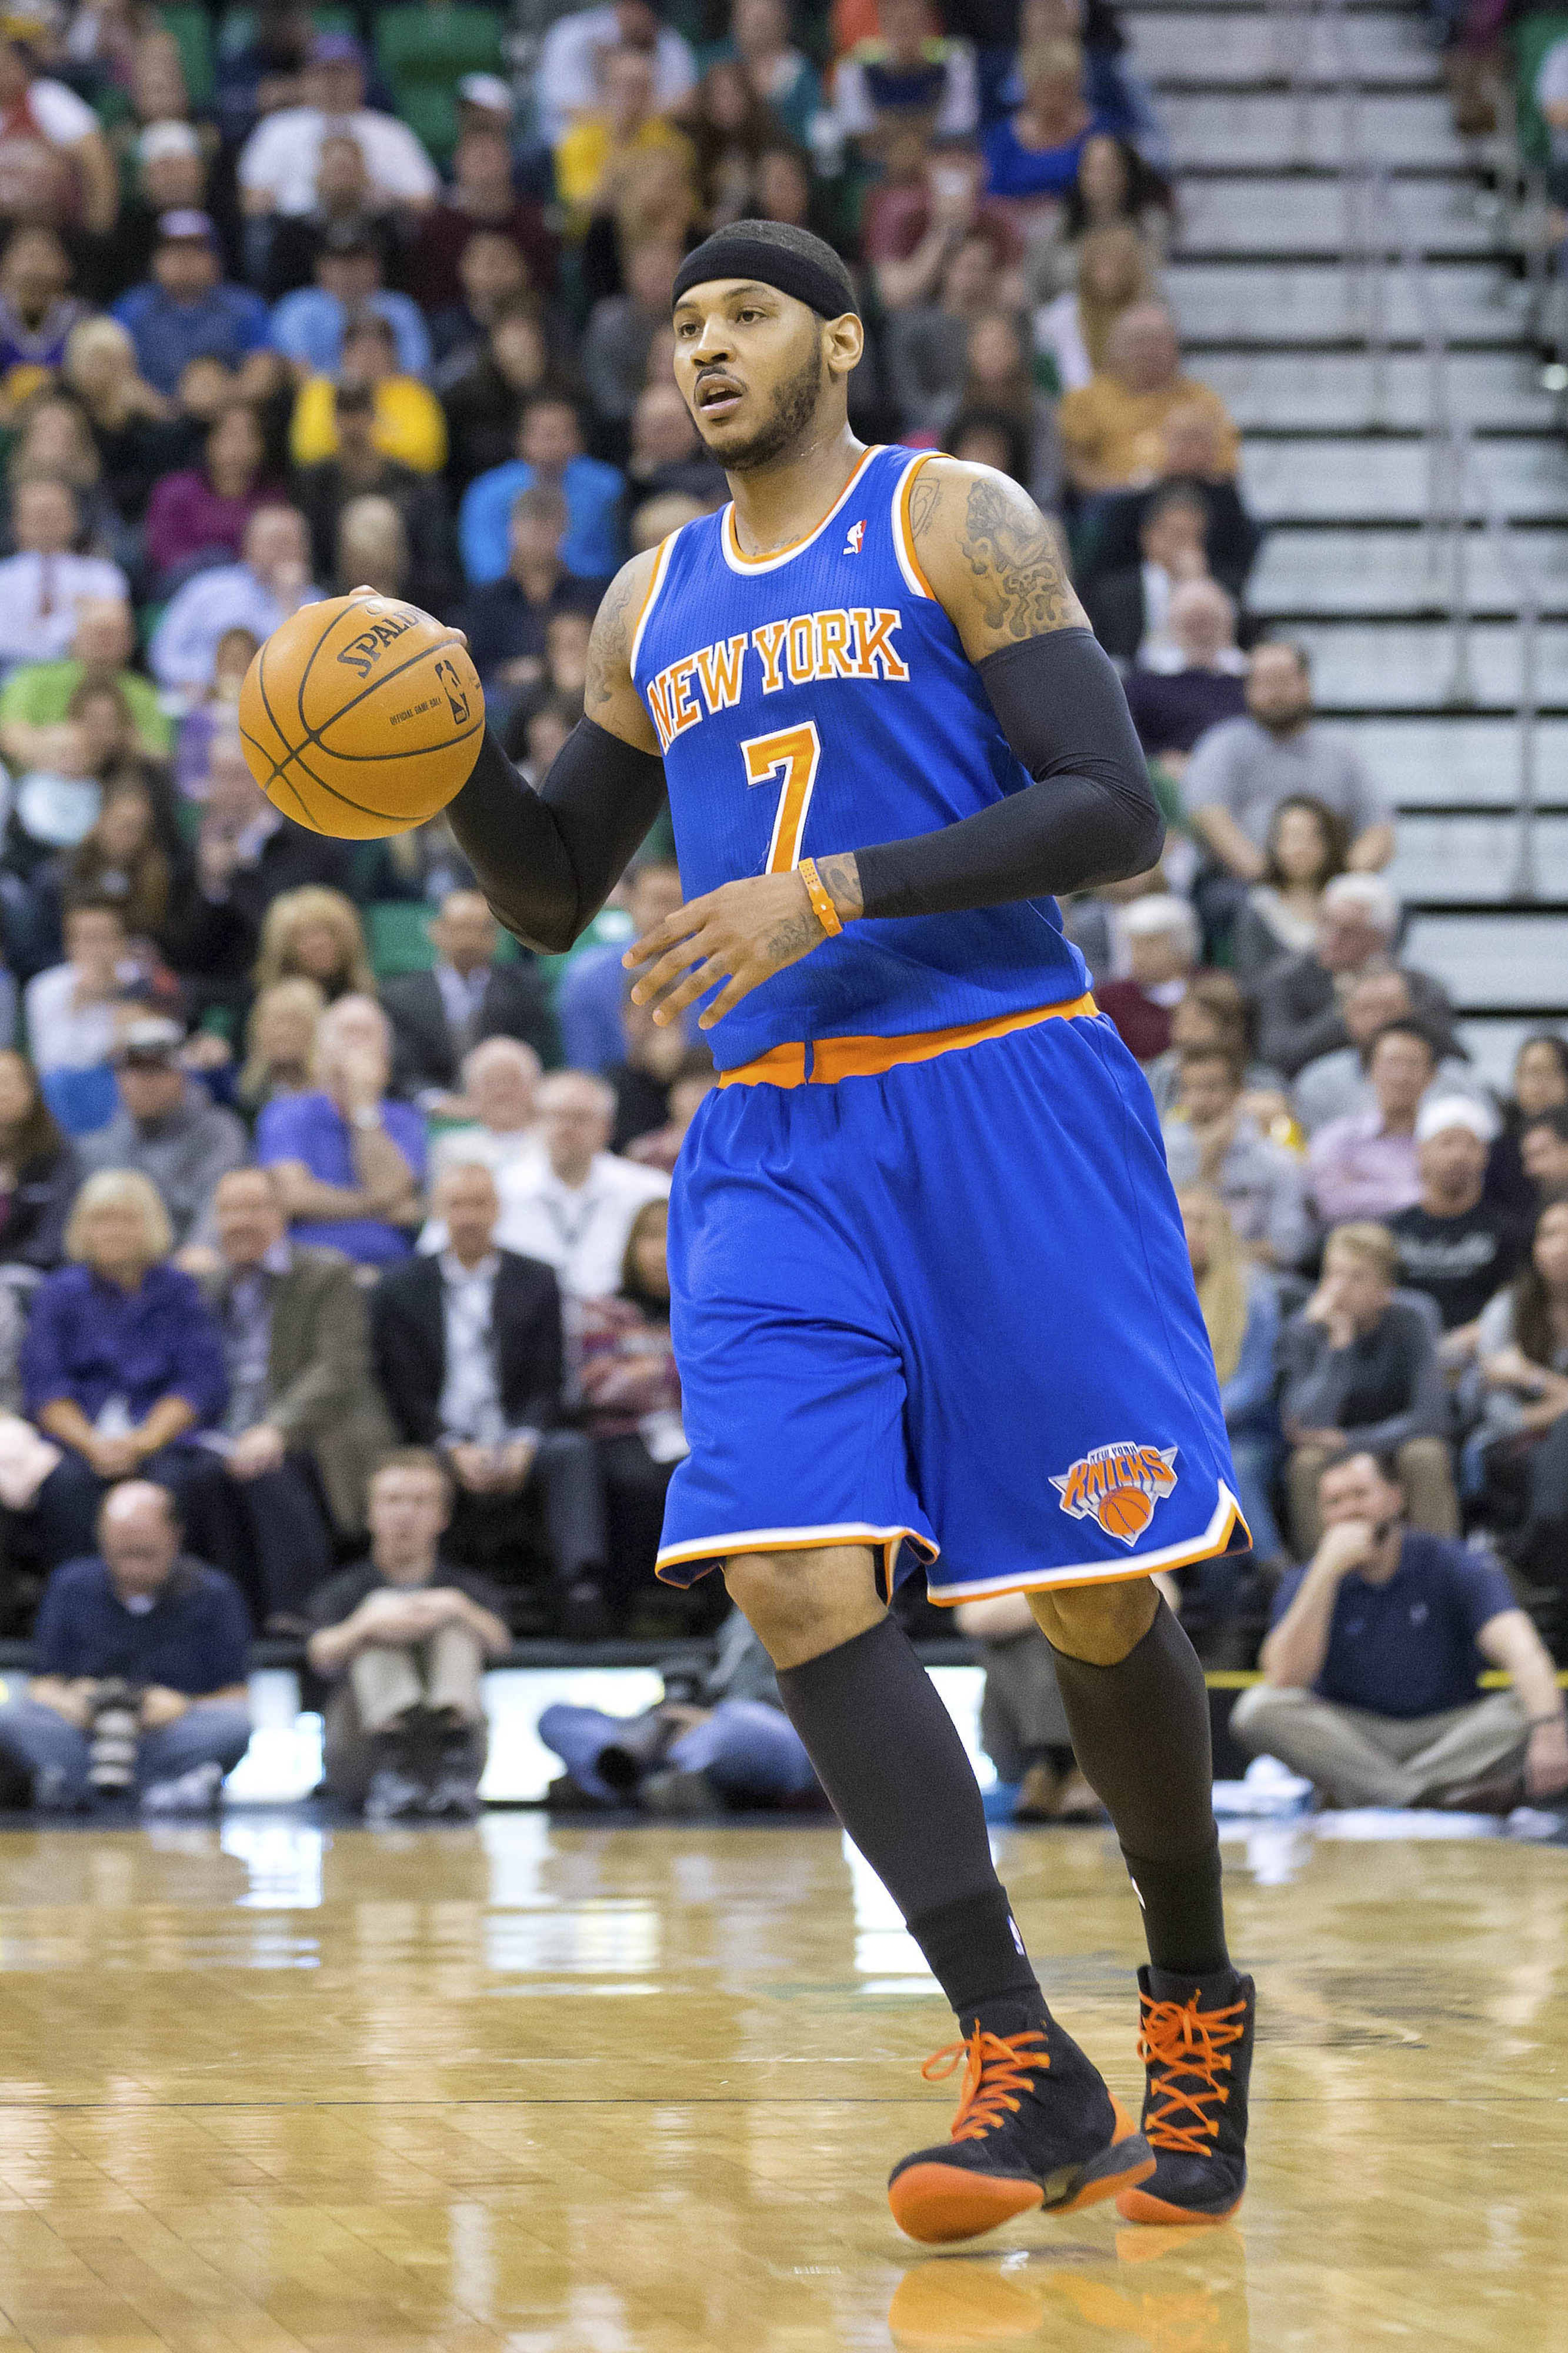 Carmelo Anthony favoring leaving Knicks for Bulls or Rockets